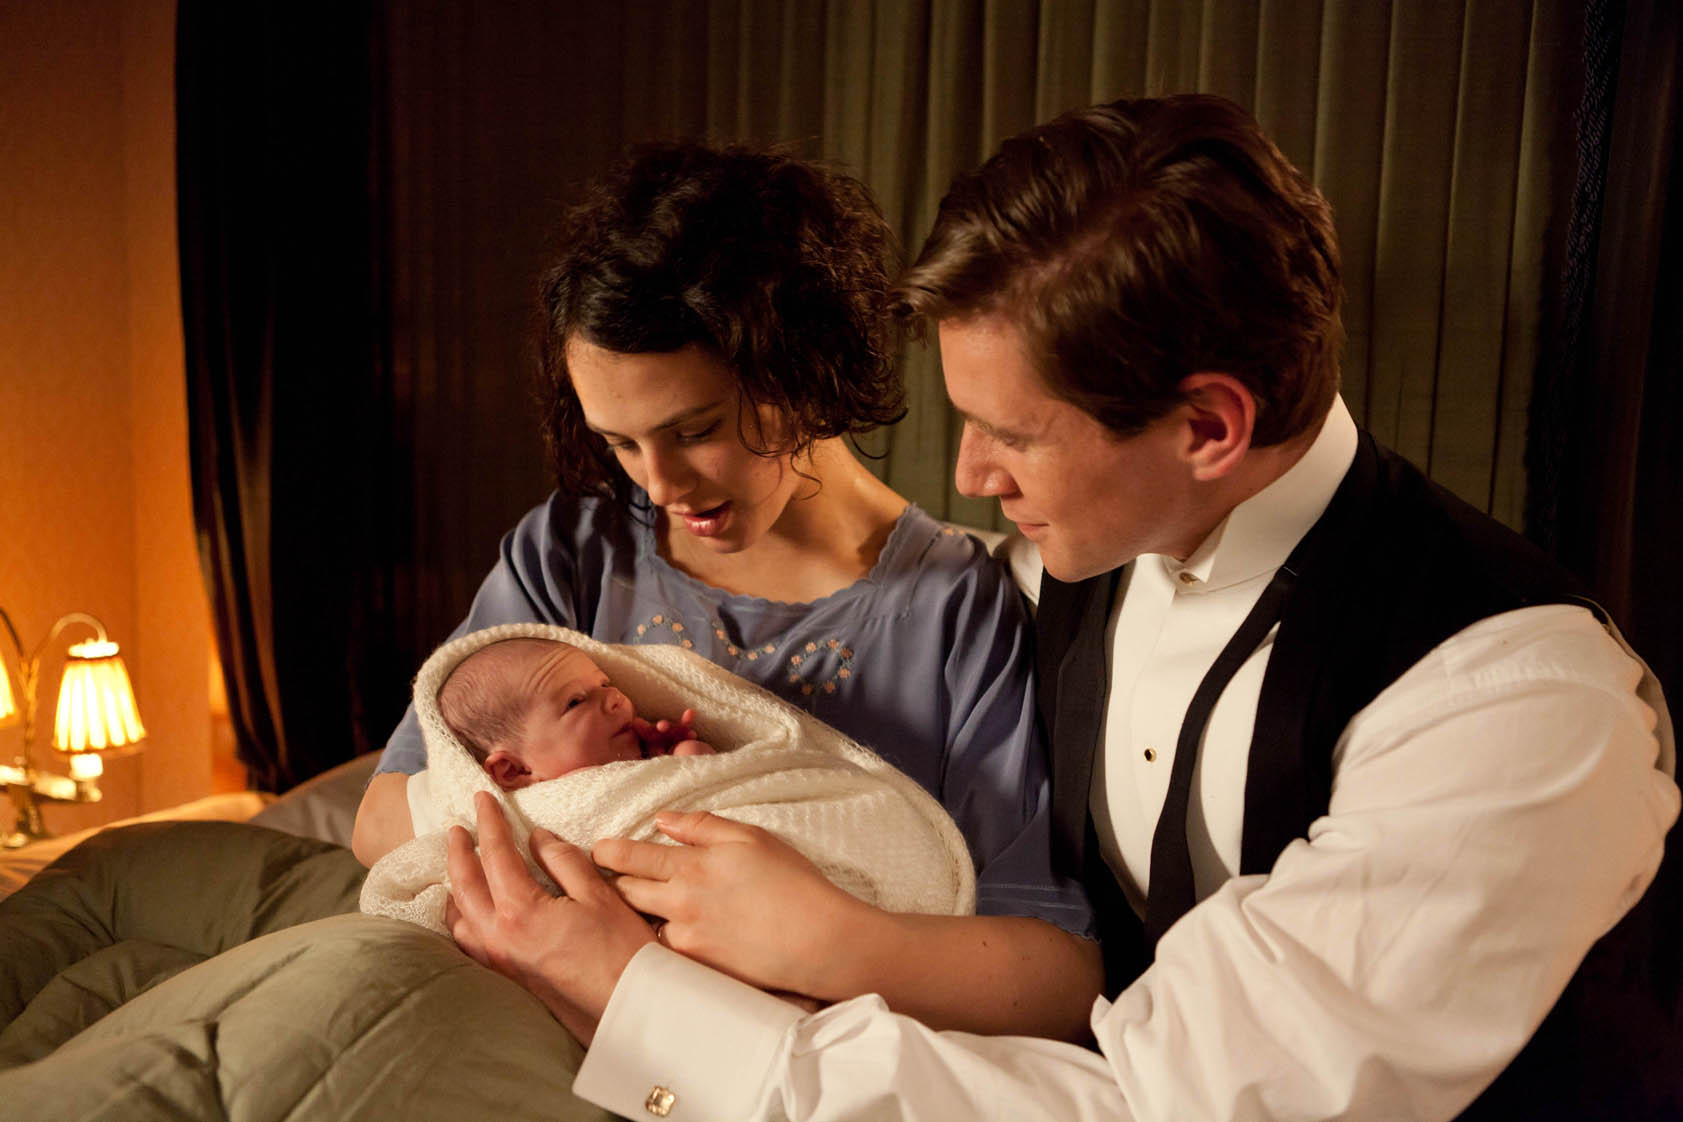 Downton: What next for Branson after Sybil death?